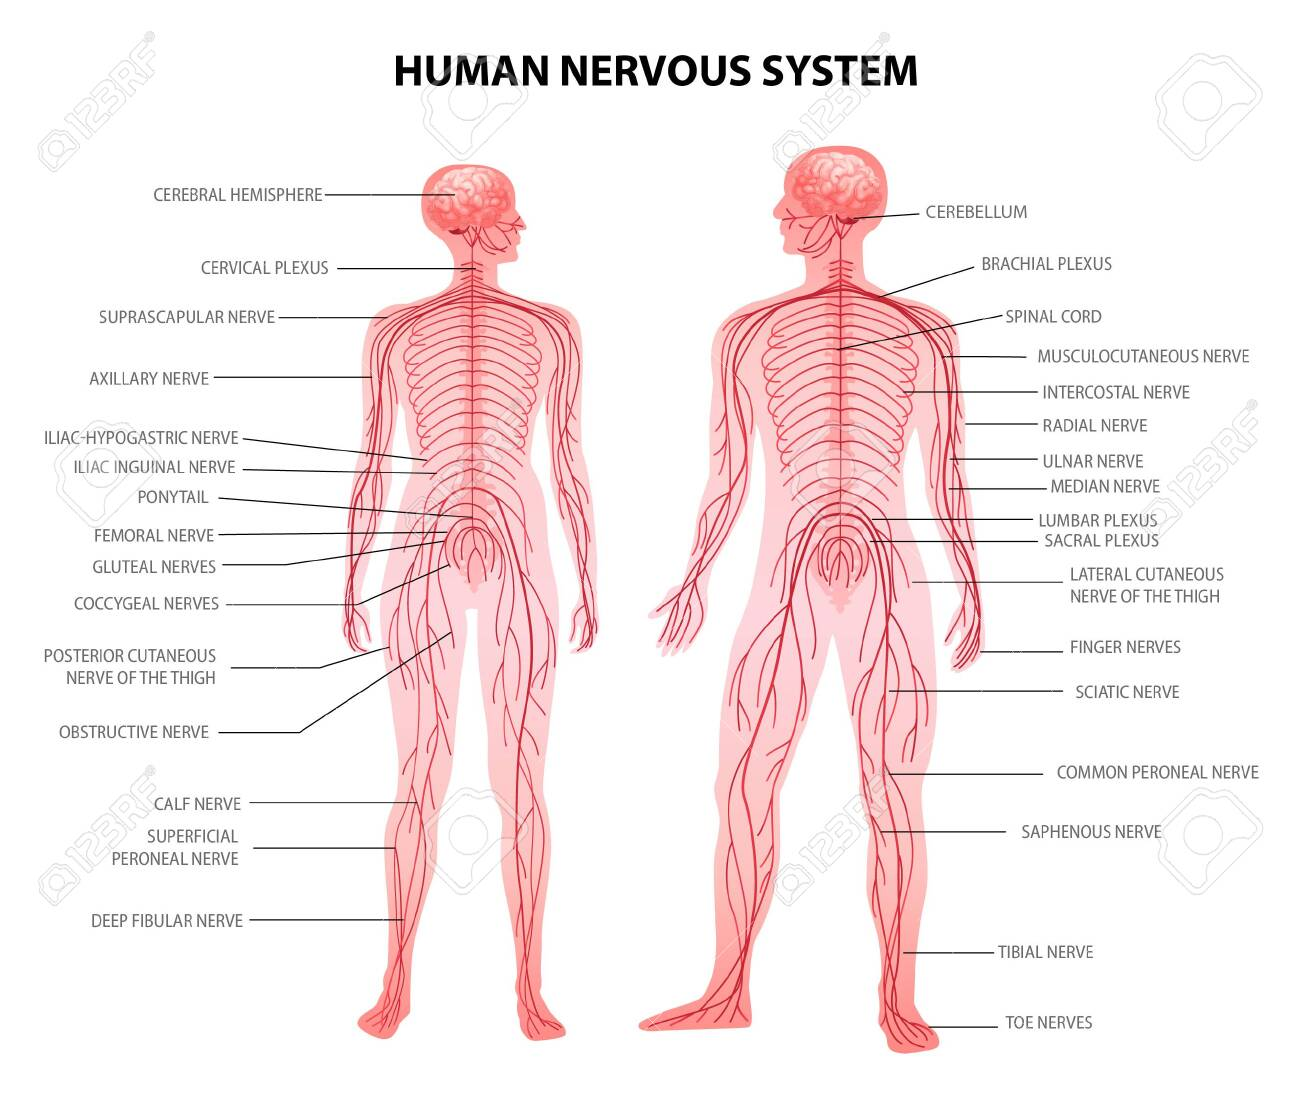 Human male female body central and peripheral nervous system realistic physiology educative chart anatomical terminology vector illustration - 143584433